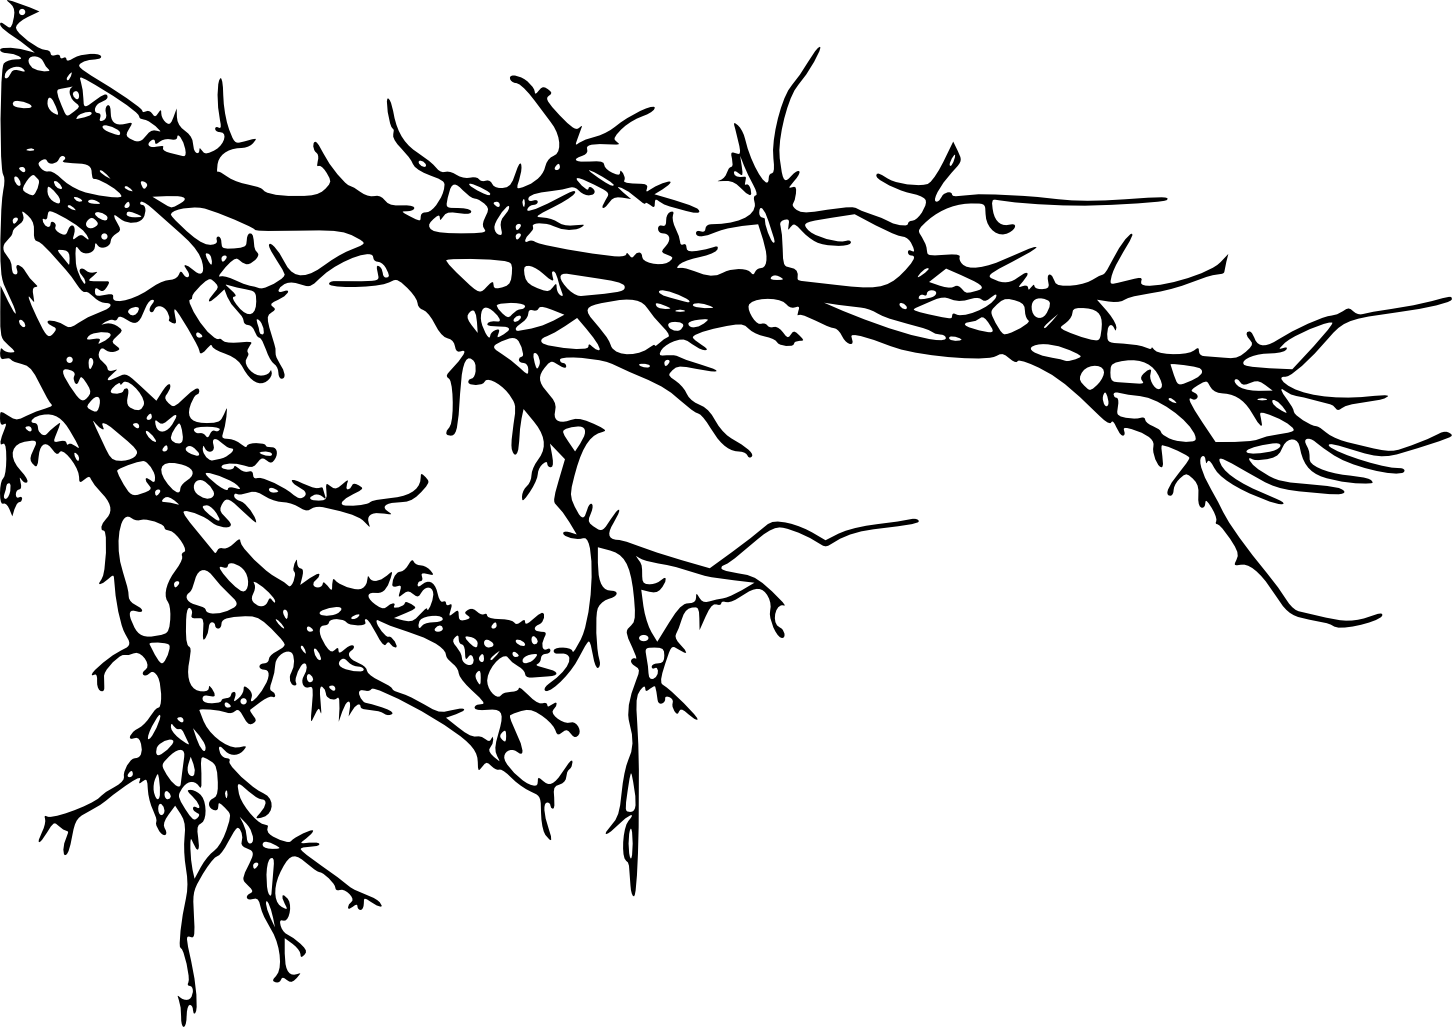 Black and white tree branch clipart banner freeuse library Branch Tree Silhouette Clip art - tree branch 1452*1027 transprent ... banner freeuse library